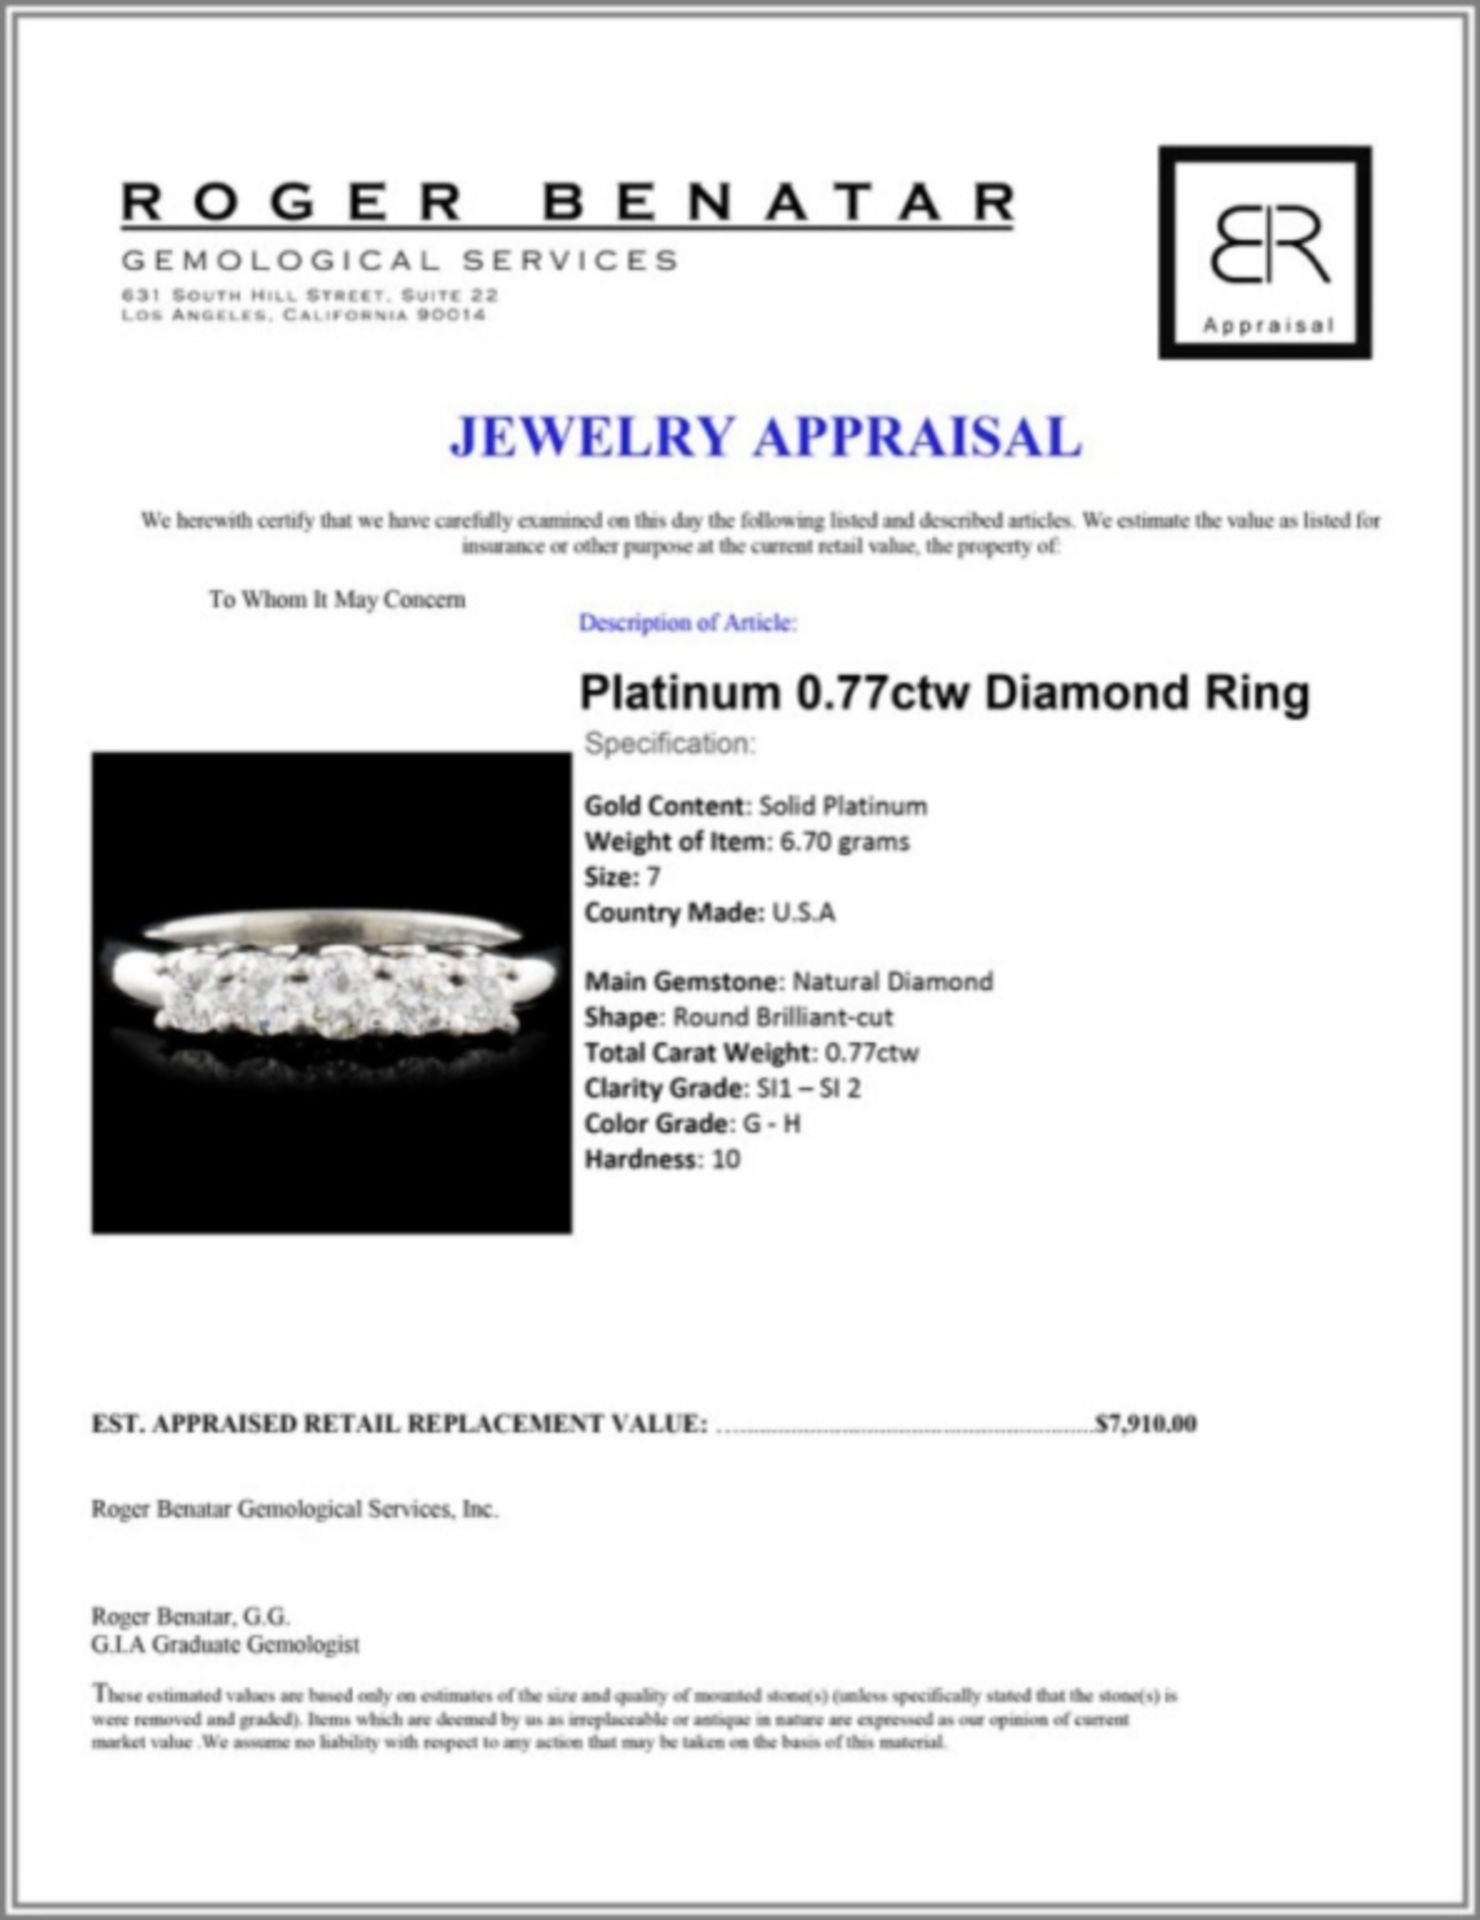 Platinum 0.77ctw Diamond Ring - Image 3 of 3